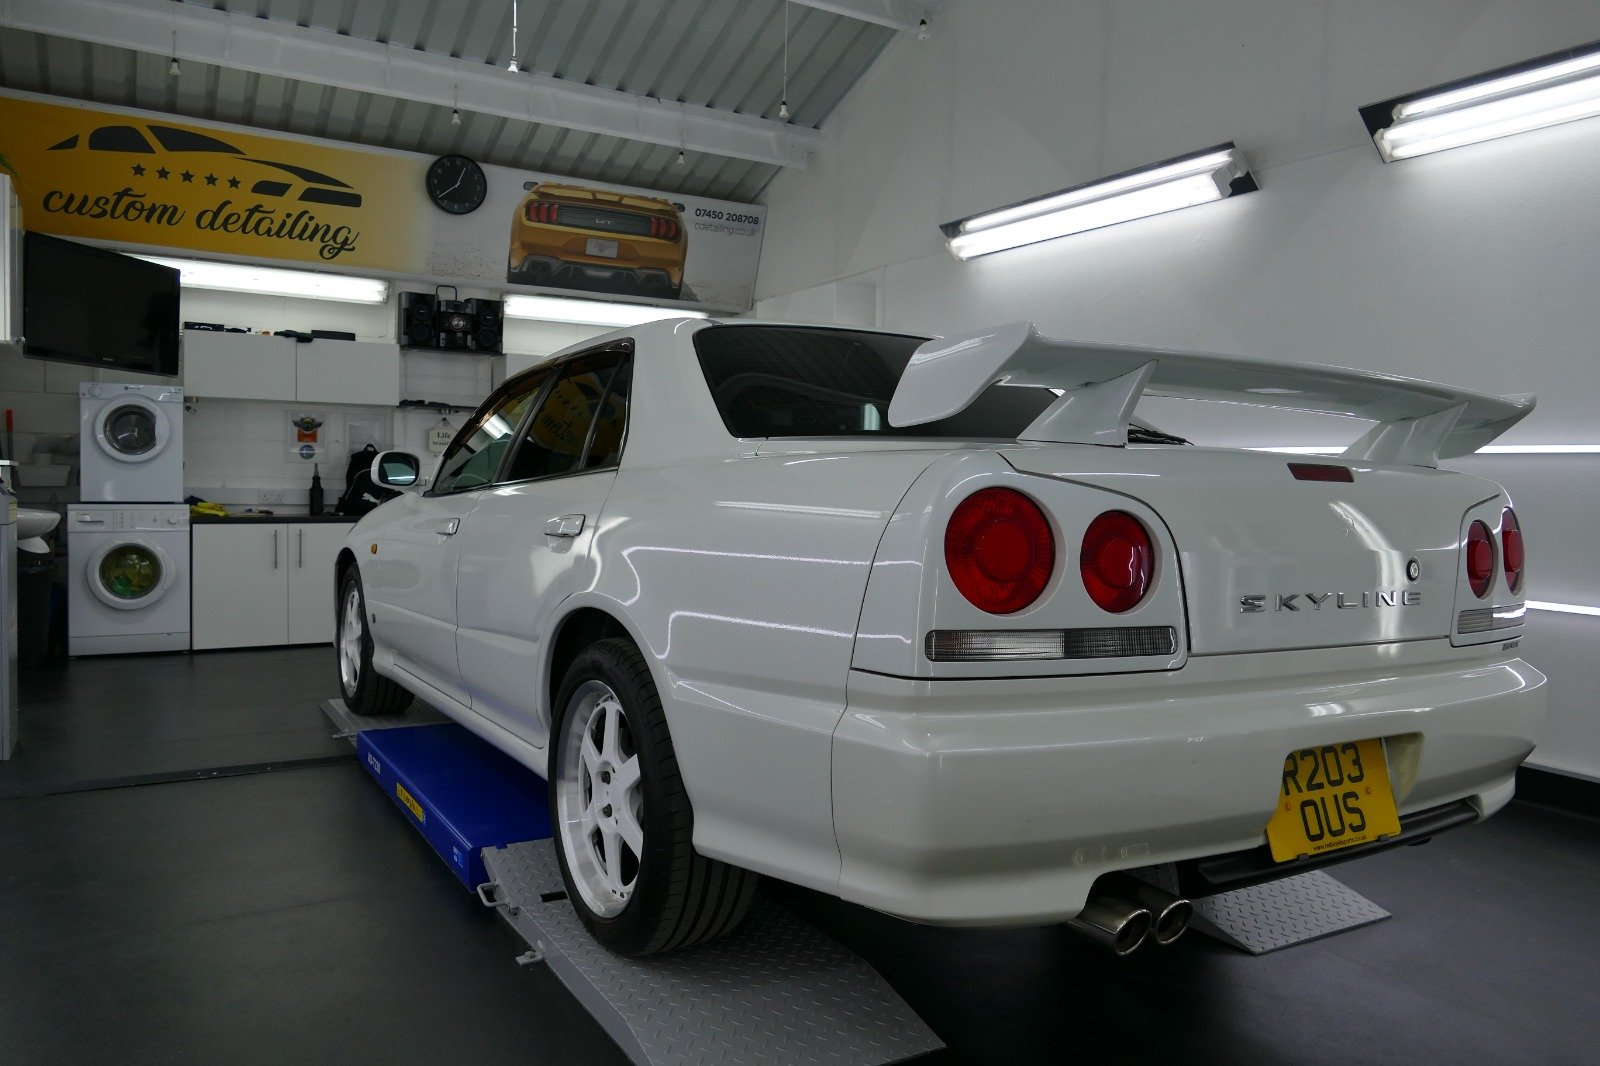 1998 Nissan Skyline R34 4 door Non Turbo Tiptronic For Sale (picture 2 of 6)